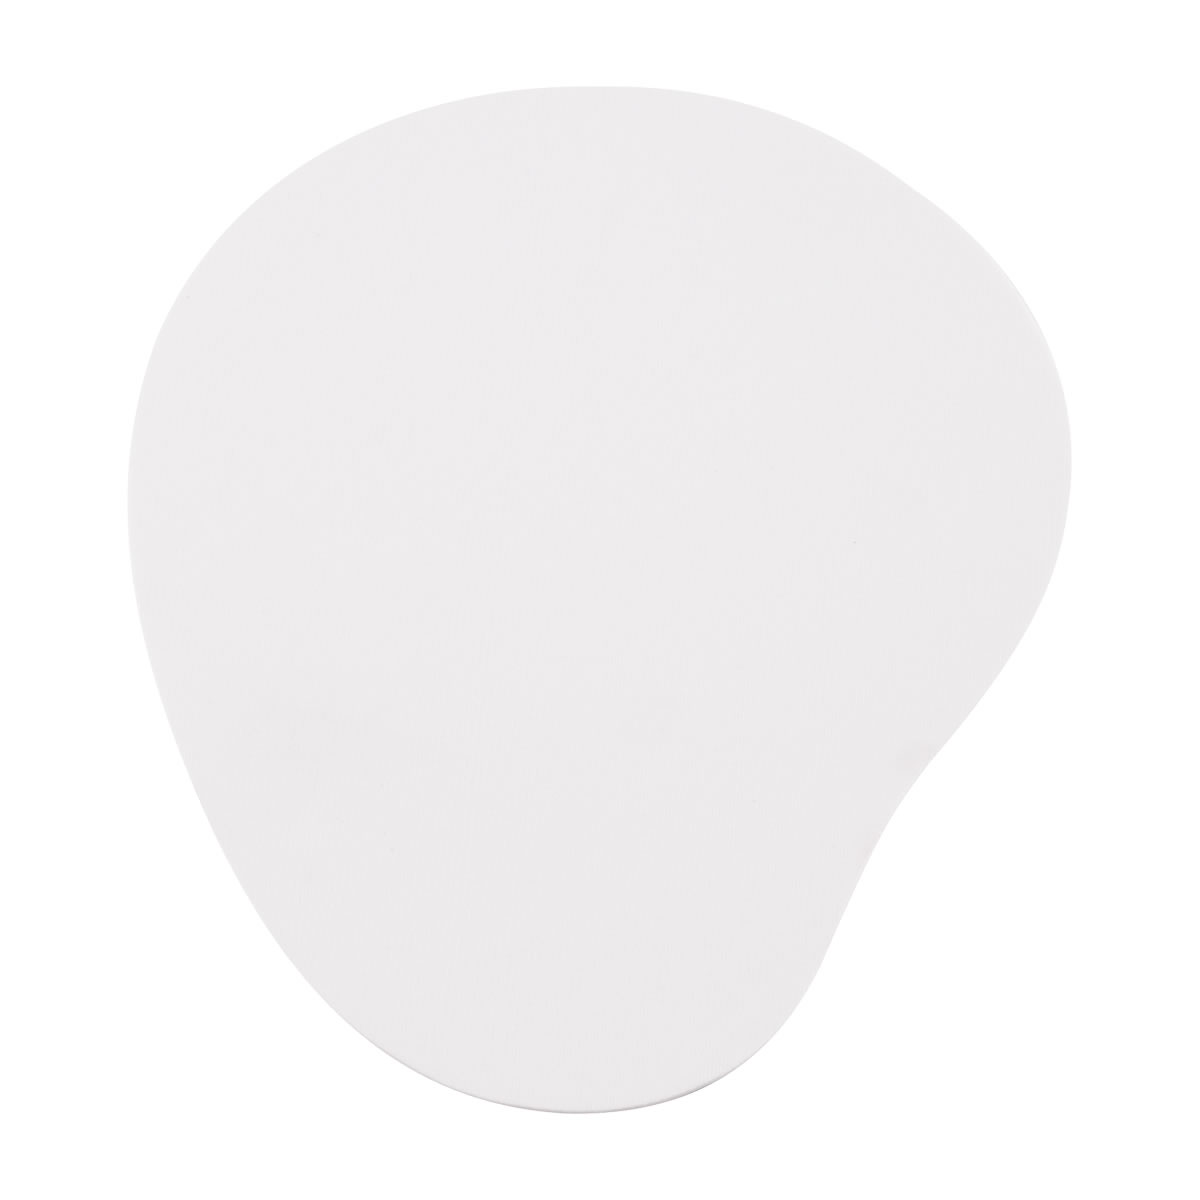 MOUSE PAD BEAN COLOR BLANCO